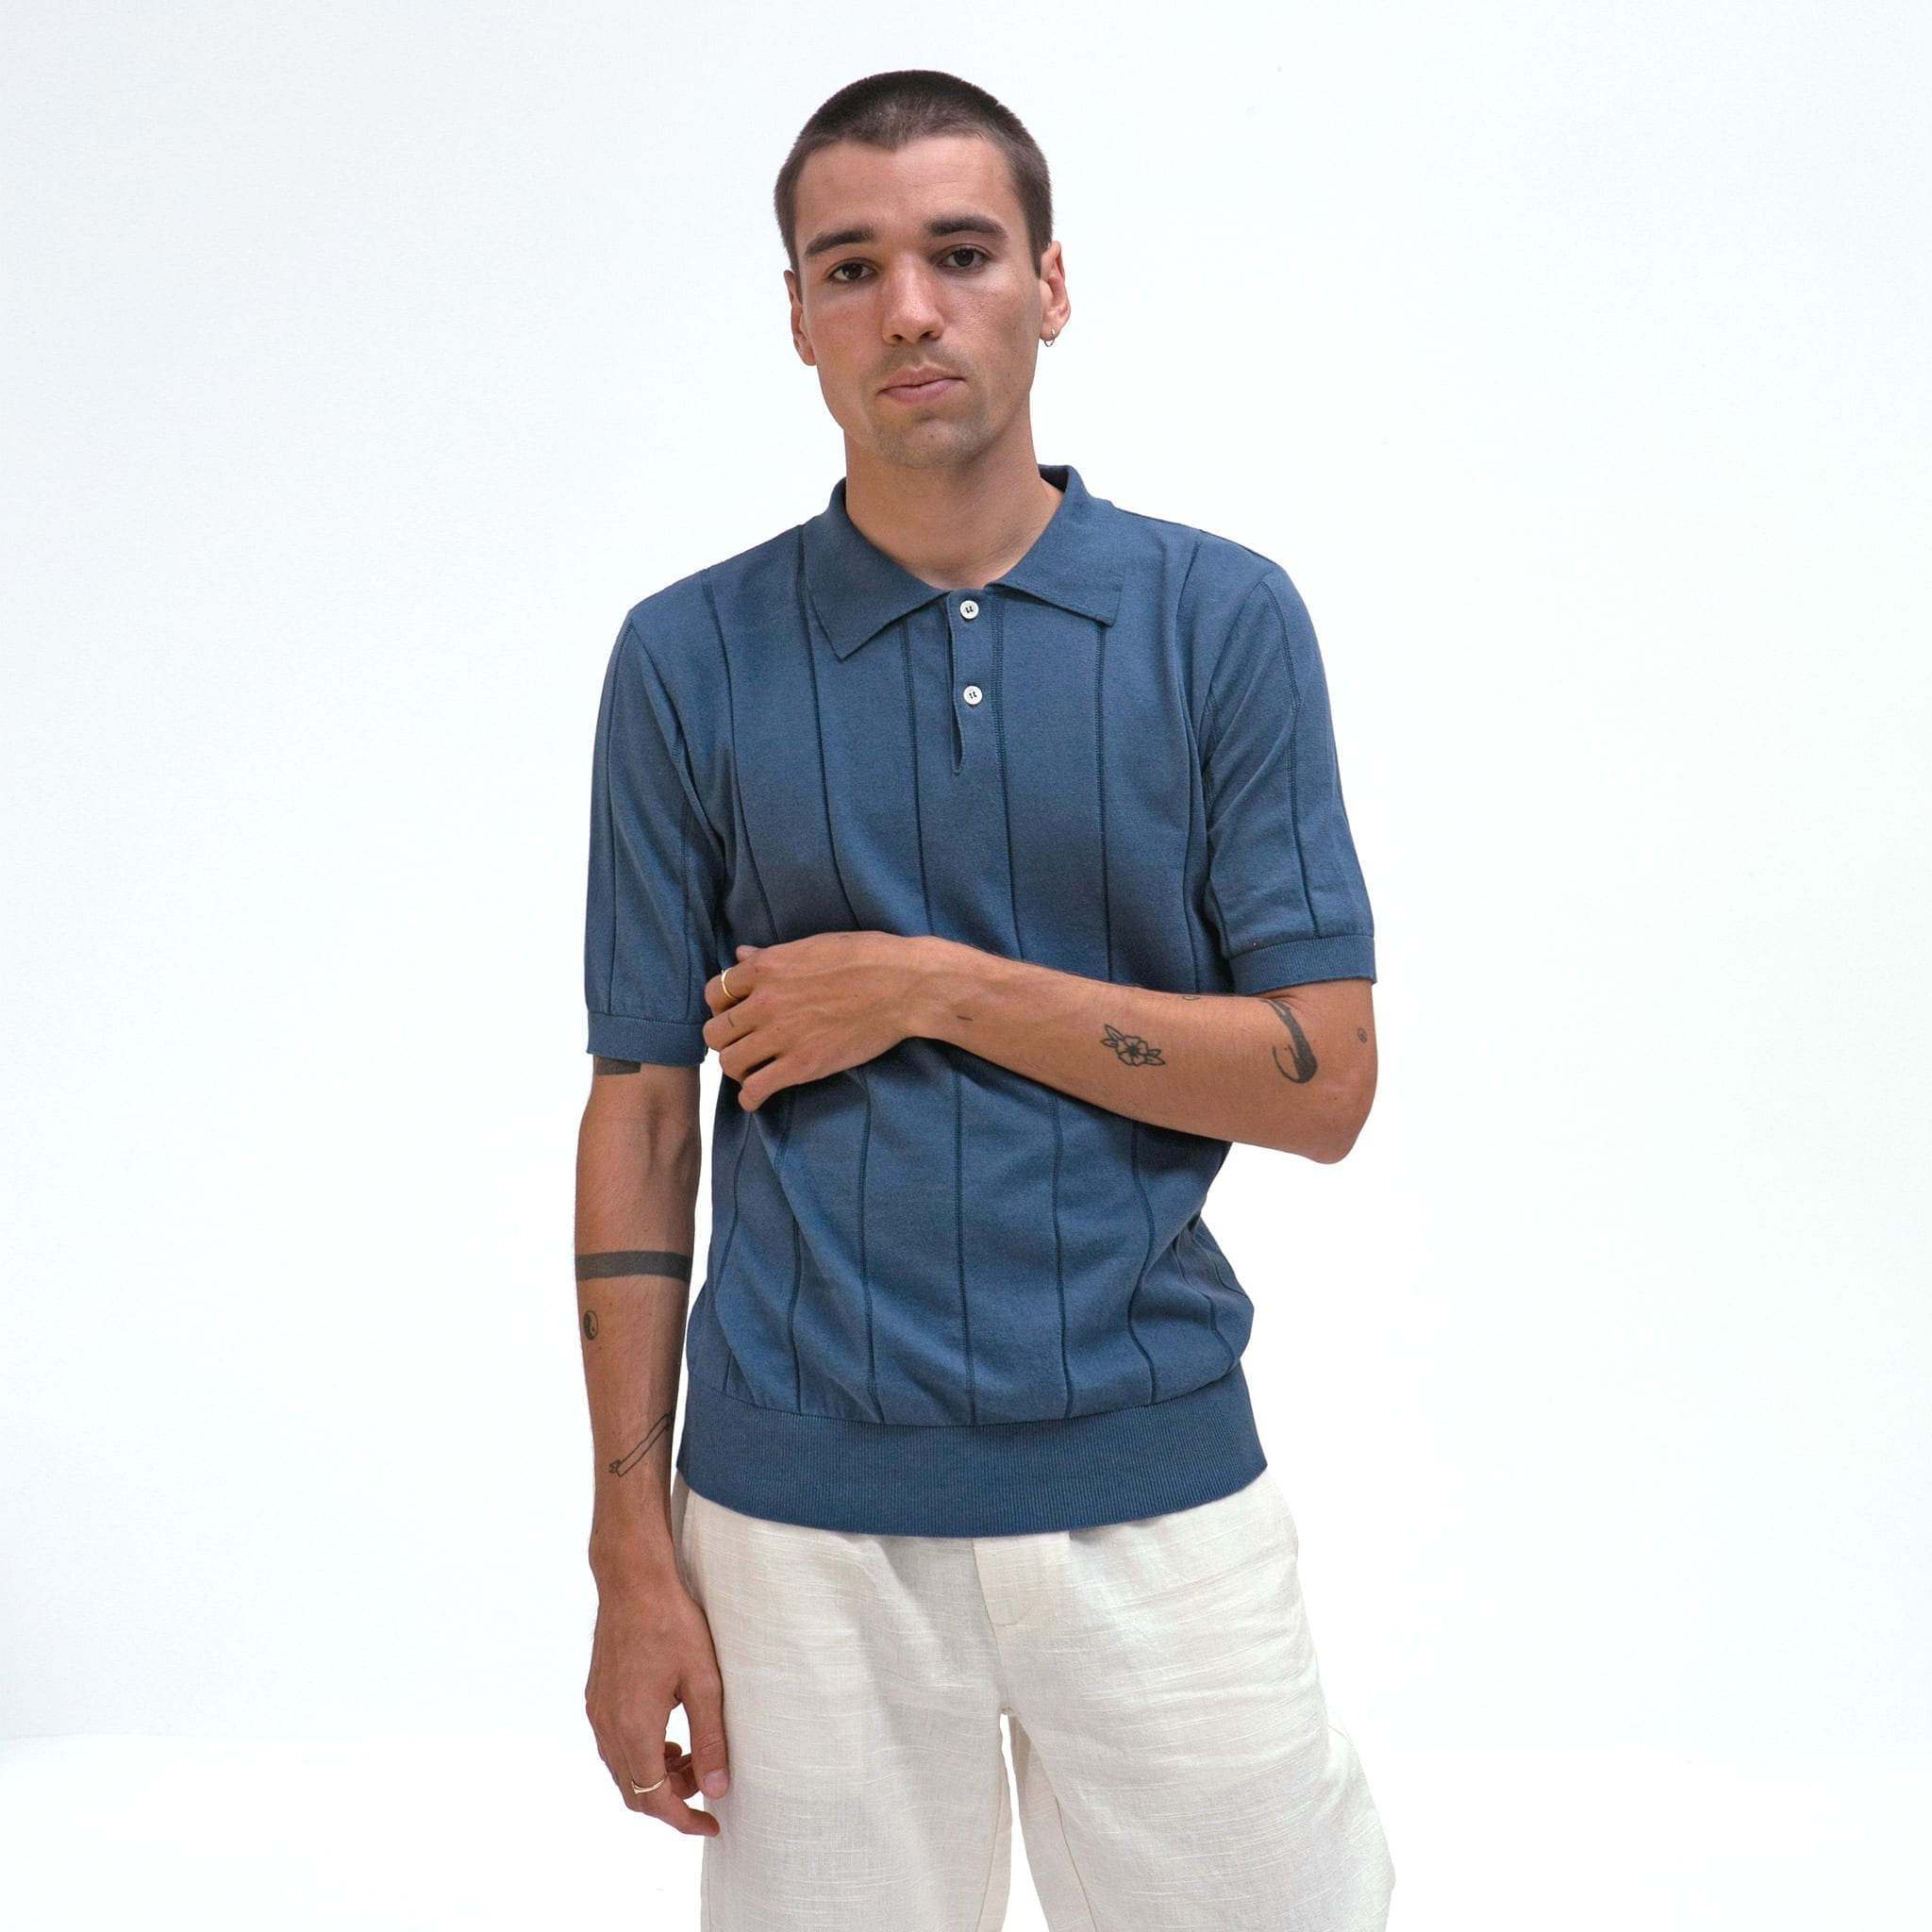 Far Afield Jacobs Short Sleeve Polo a Ensign Blue Organic Cotton FabricMid Century Inspired 2